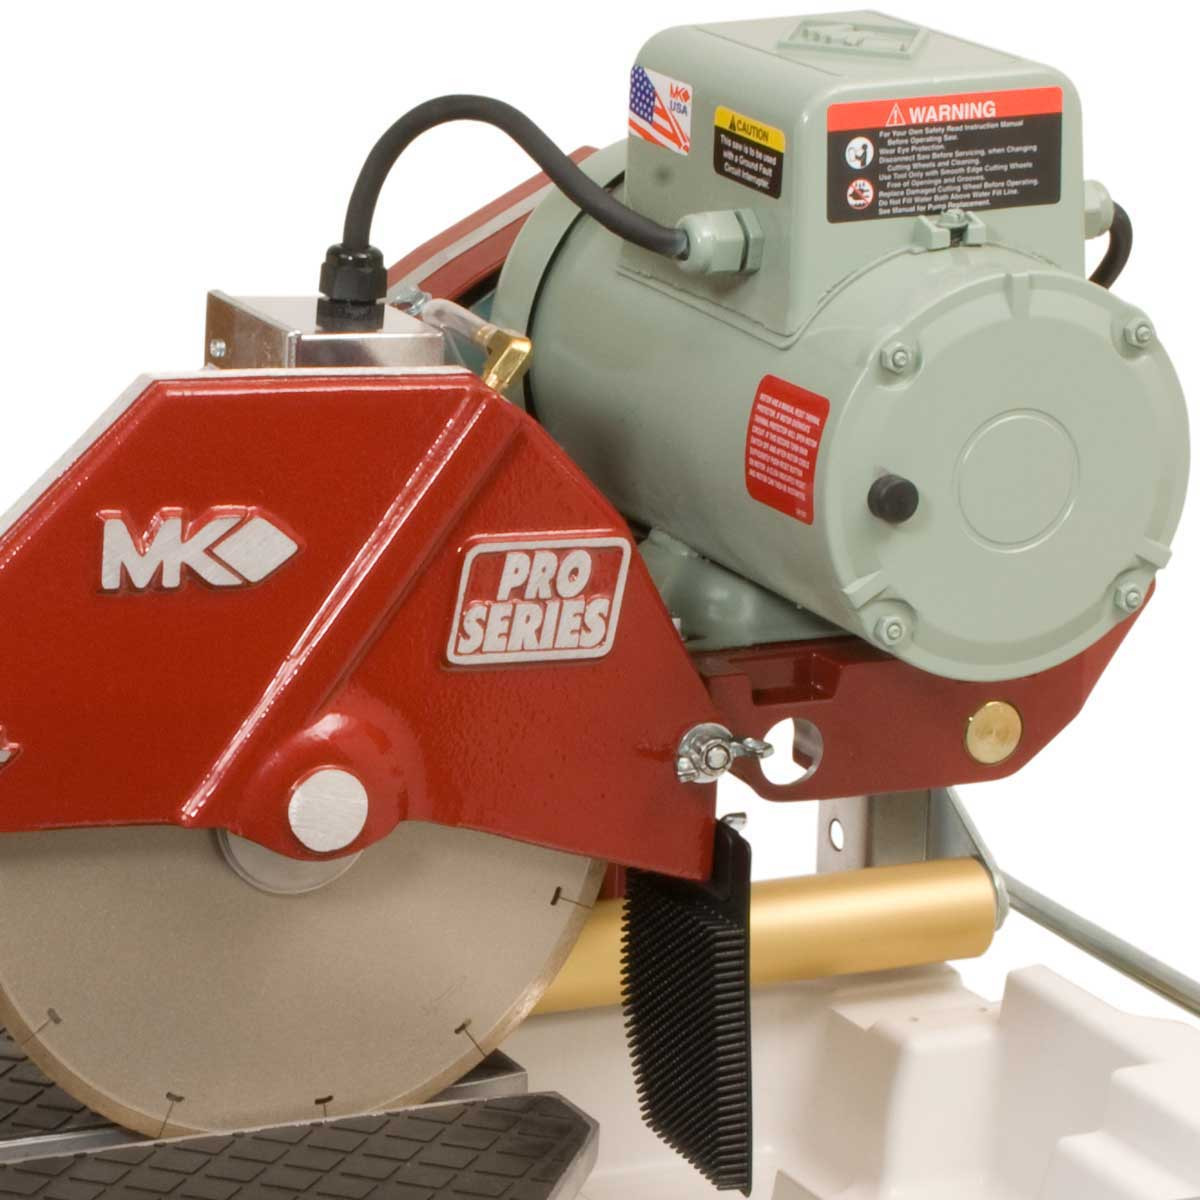 MK tile saw pro series motor